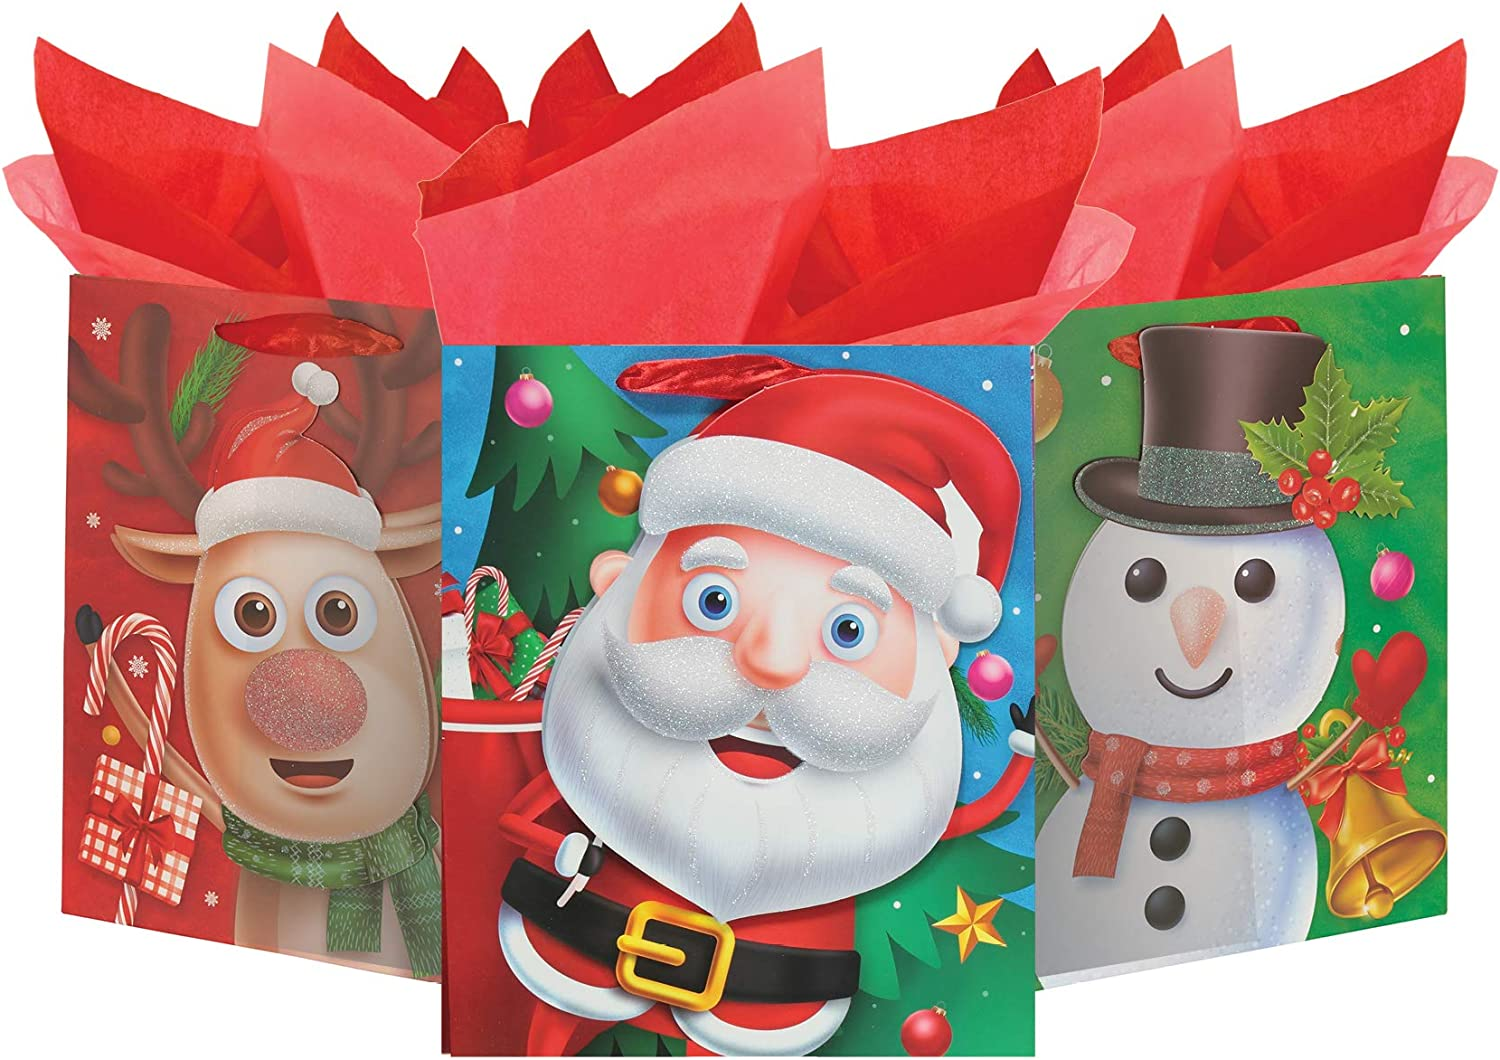 Mega Pack Xmas Gift Bags - Character Boston Mall Gi Deluxe Holiday Traditional